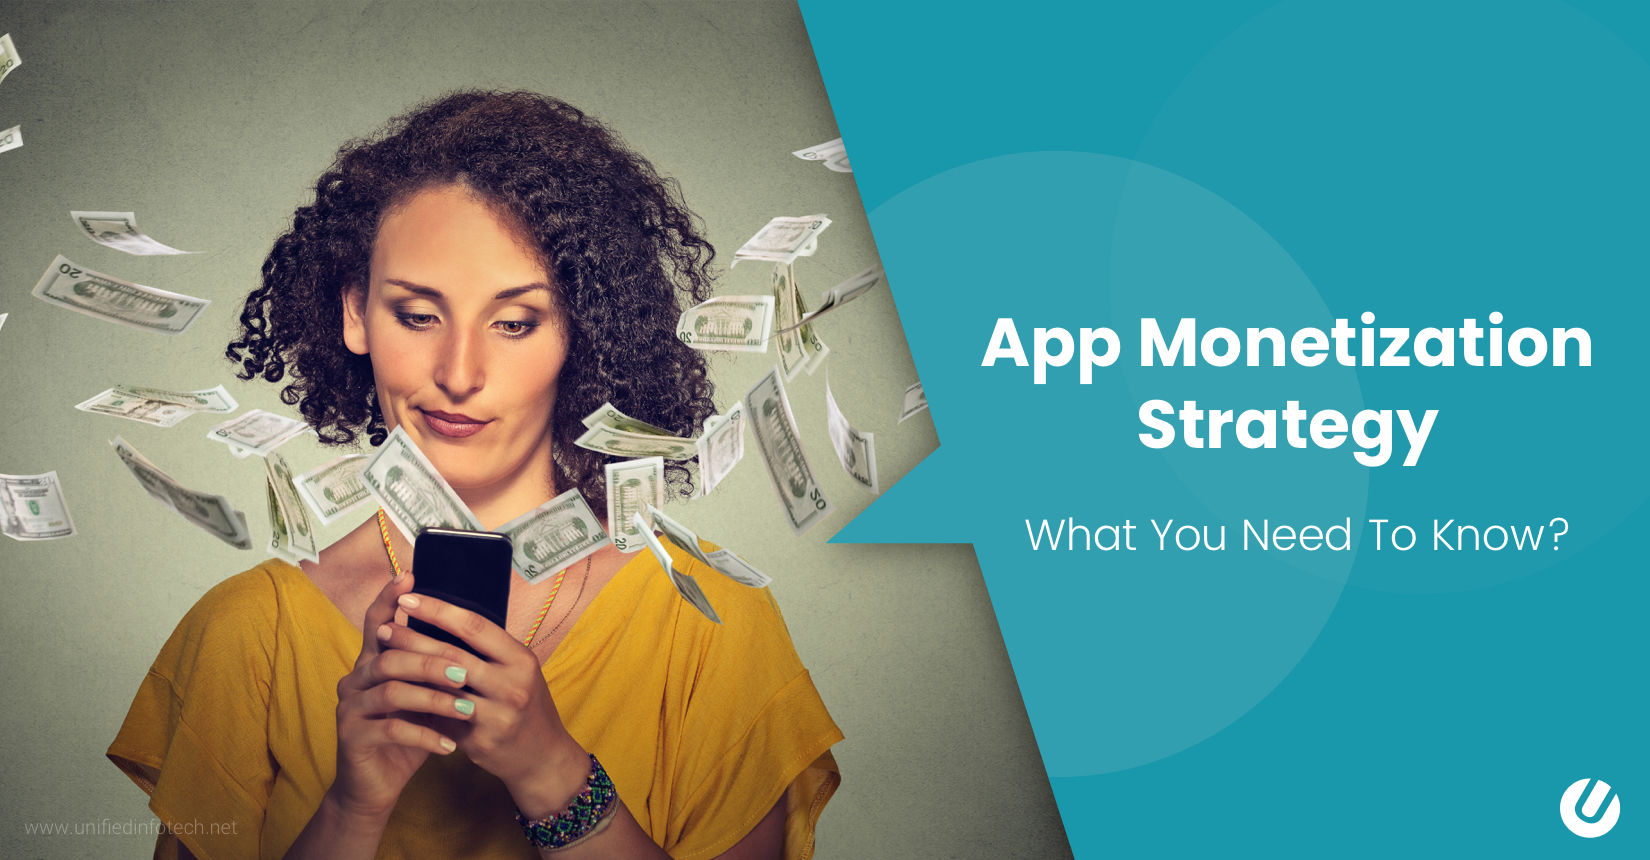 Mobile App Monetization Strategy- How to Make Money From App